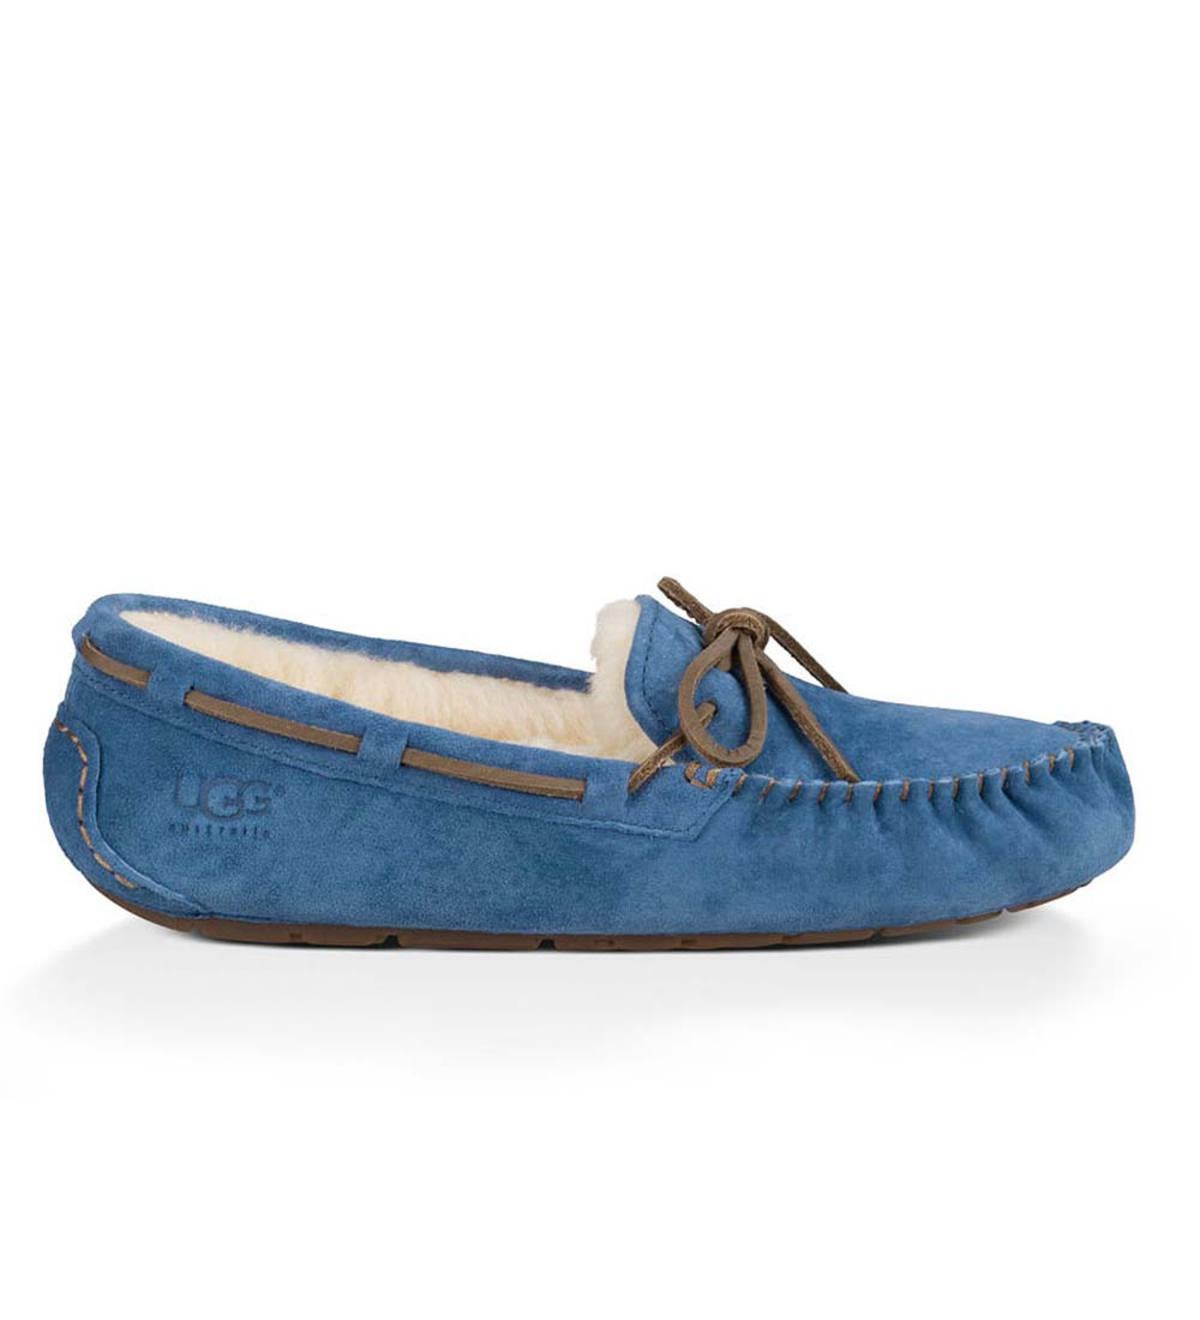 UGG Australia Womens Dakota Moccasin Slippers - Blue Jay - Size 8